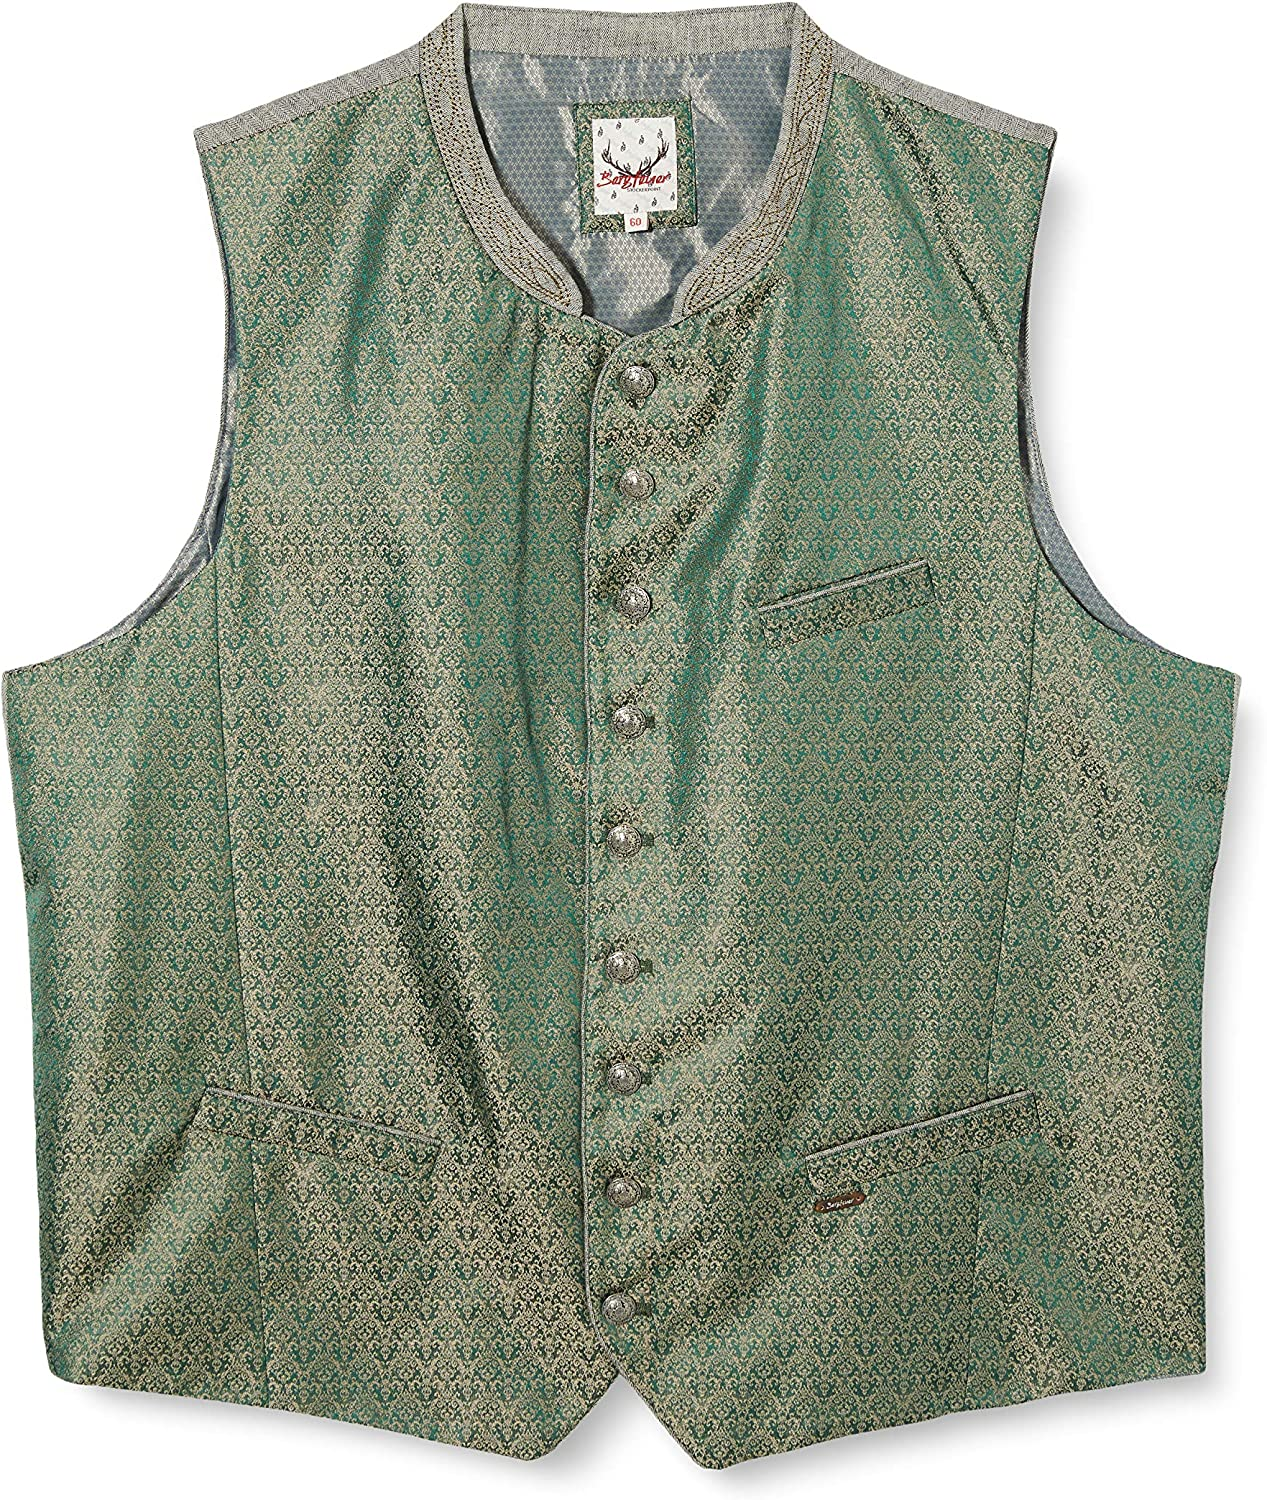 Stockerpoint Tradition Vest Wallace Green, 36